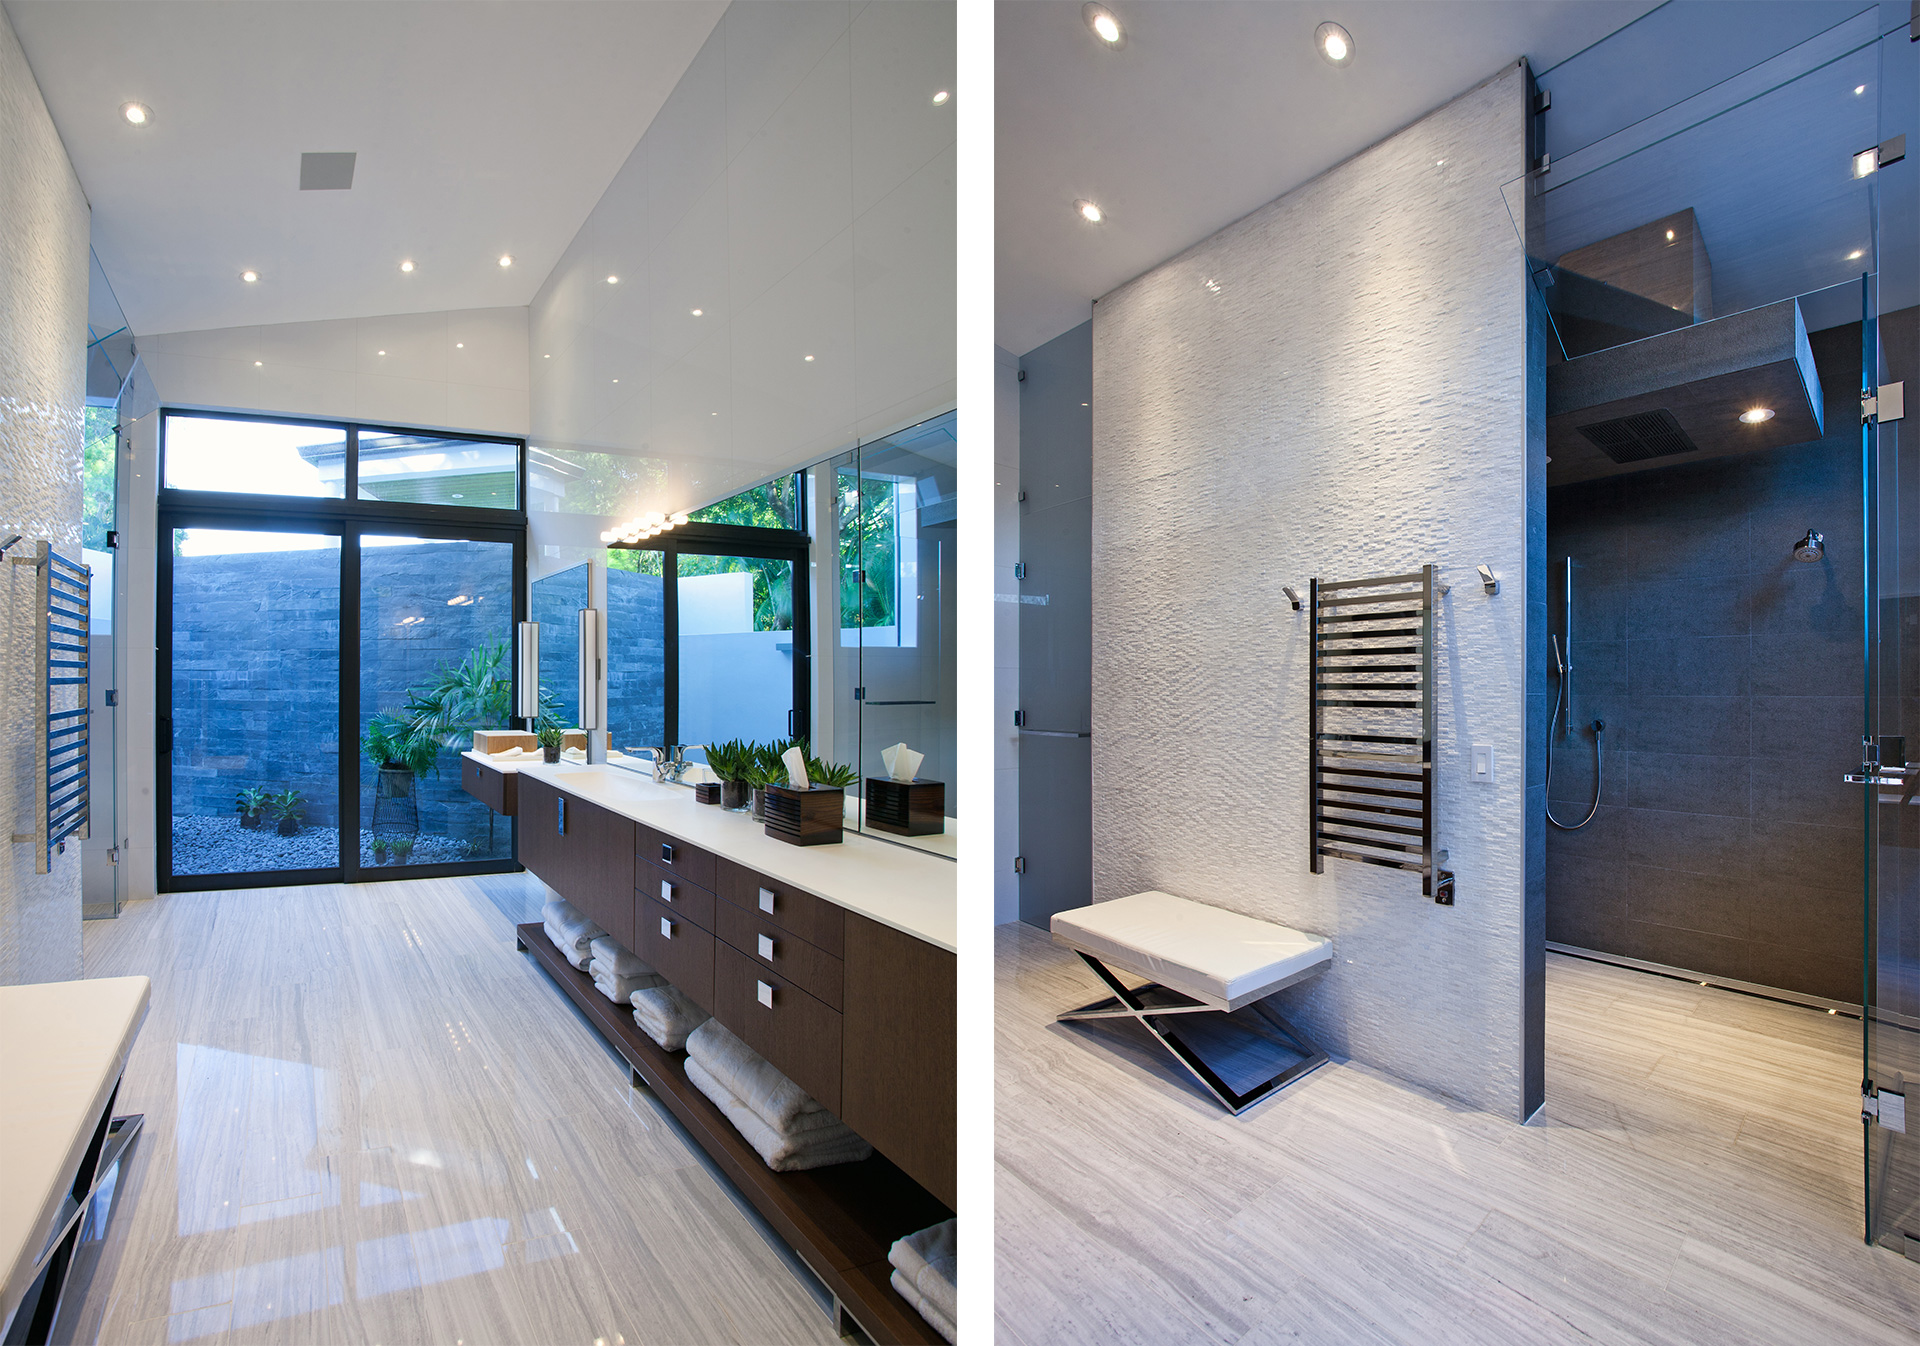 Interior Design bathroom side view project in Southwest Ranches, Florida